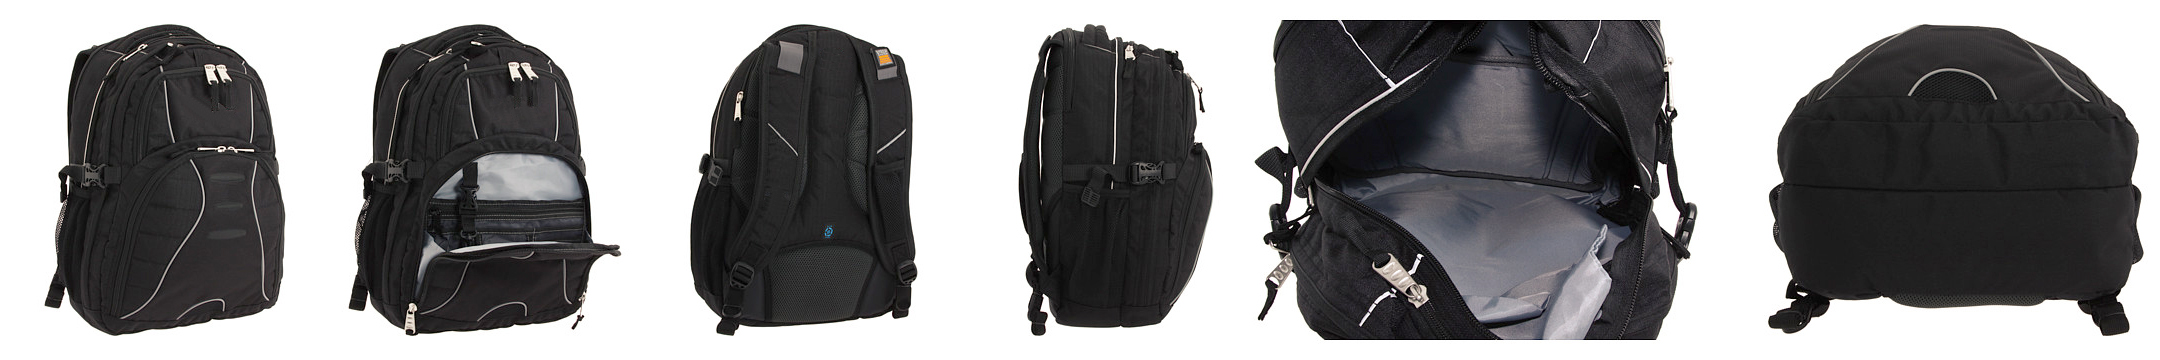 Bulletproof Everyday Pack